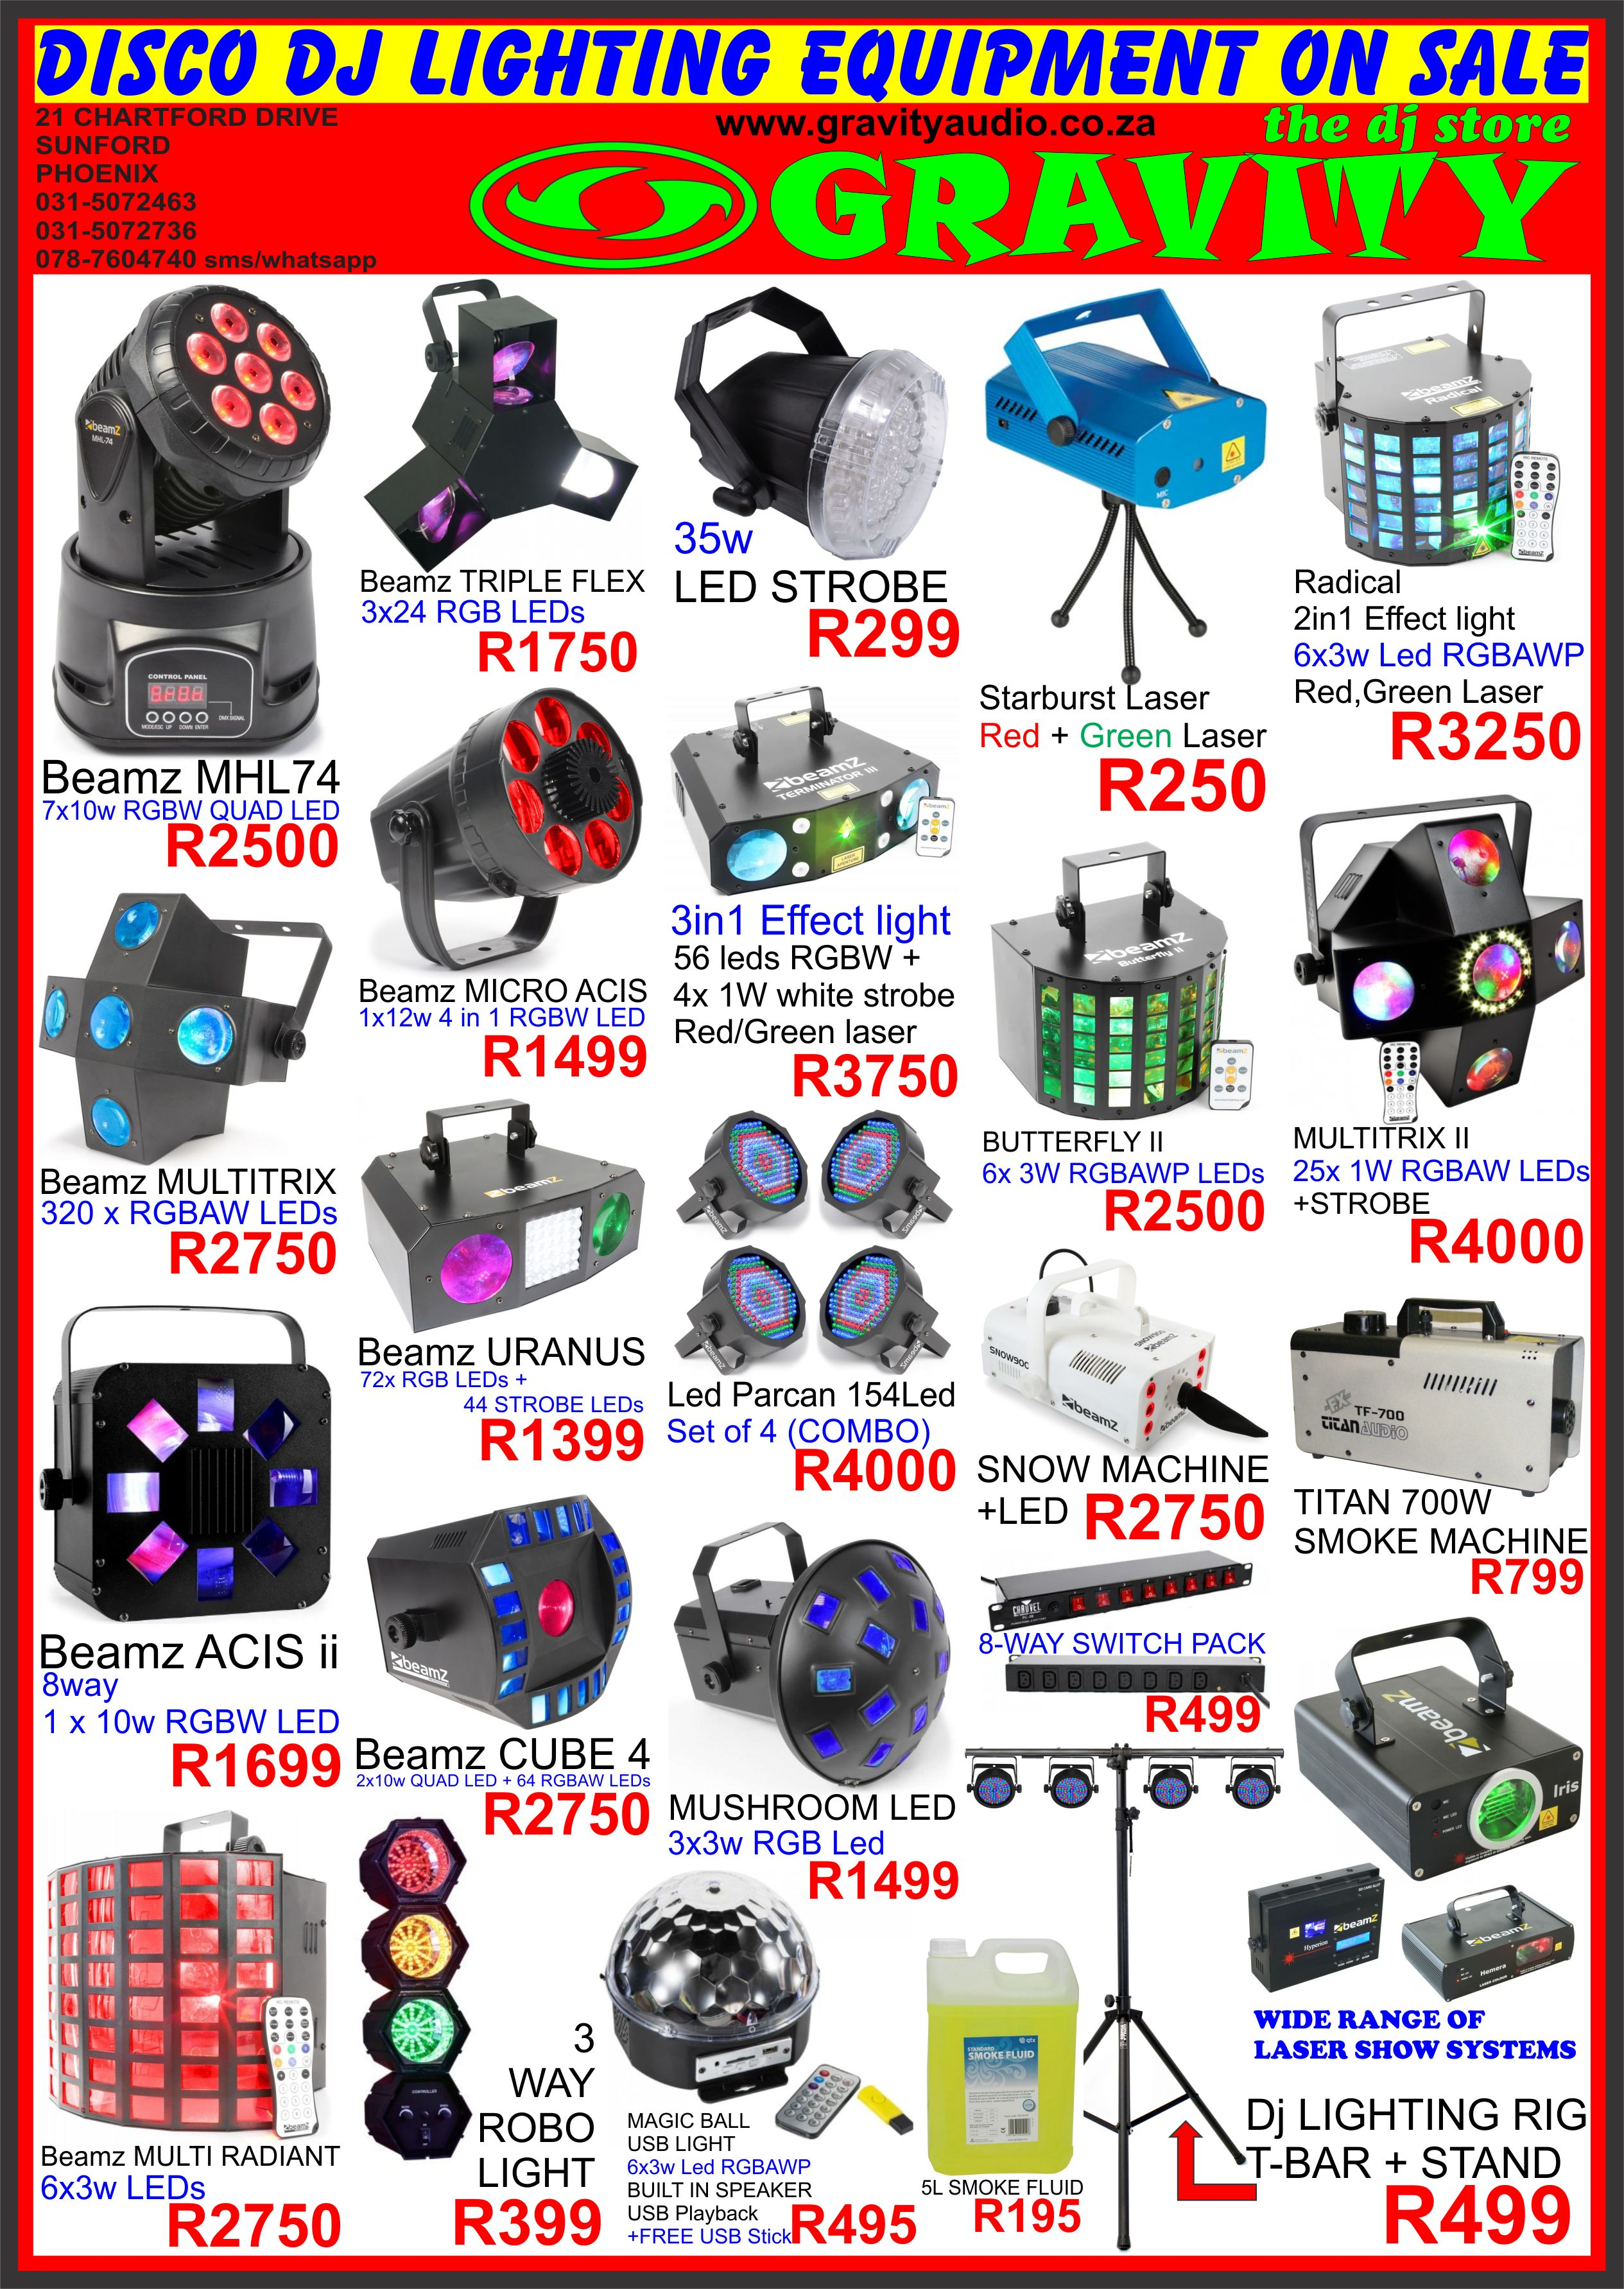 gravity audio sound and lighting warehouse car audio dj disco lighting equipment multimedia 0315072463